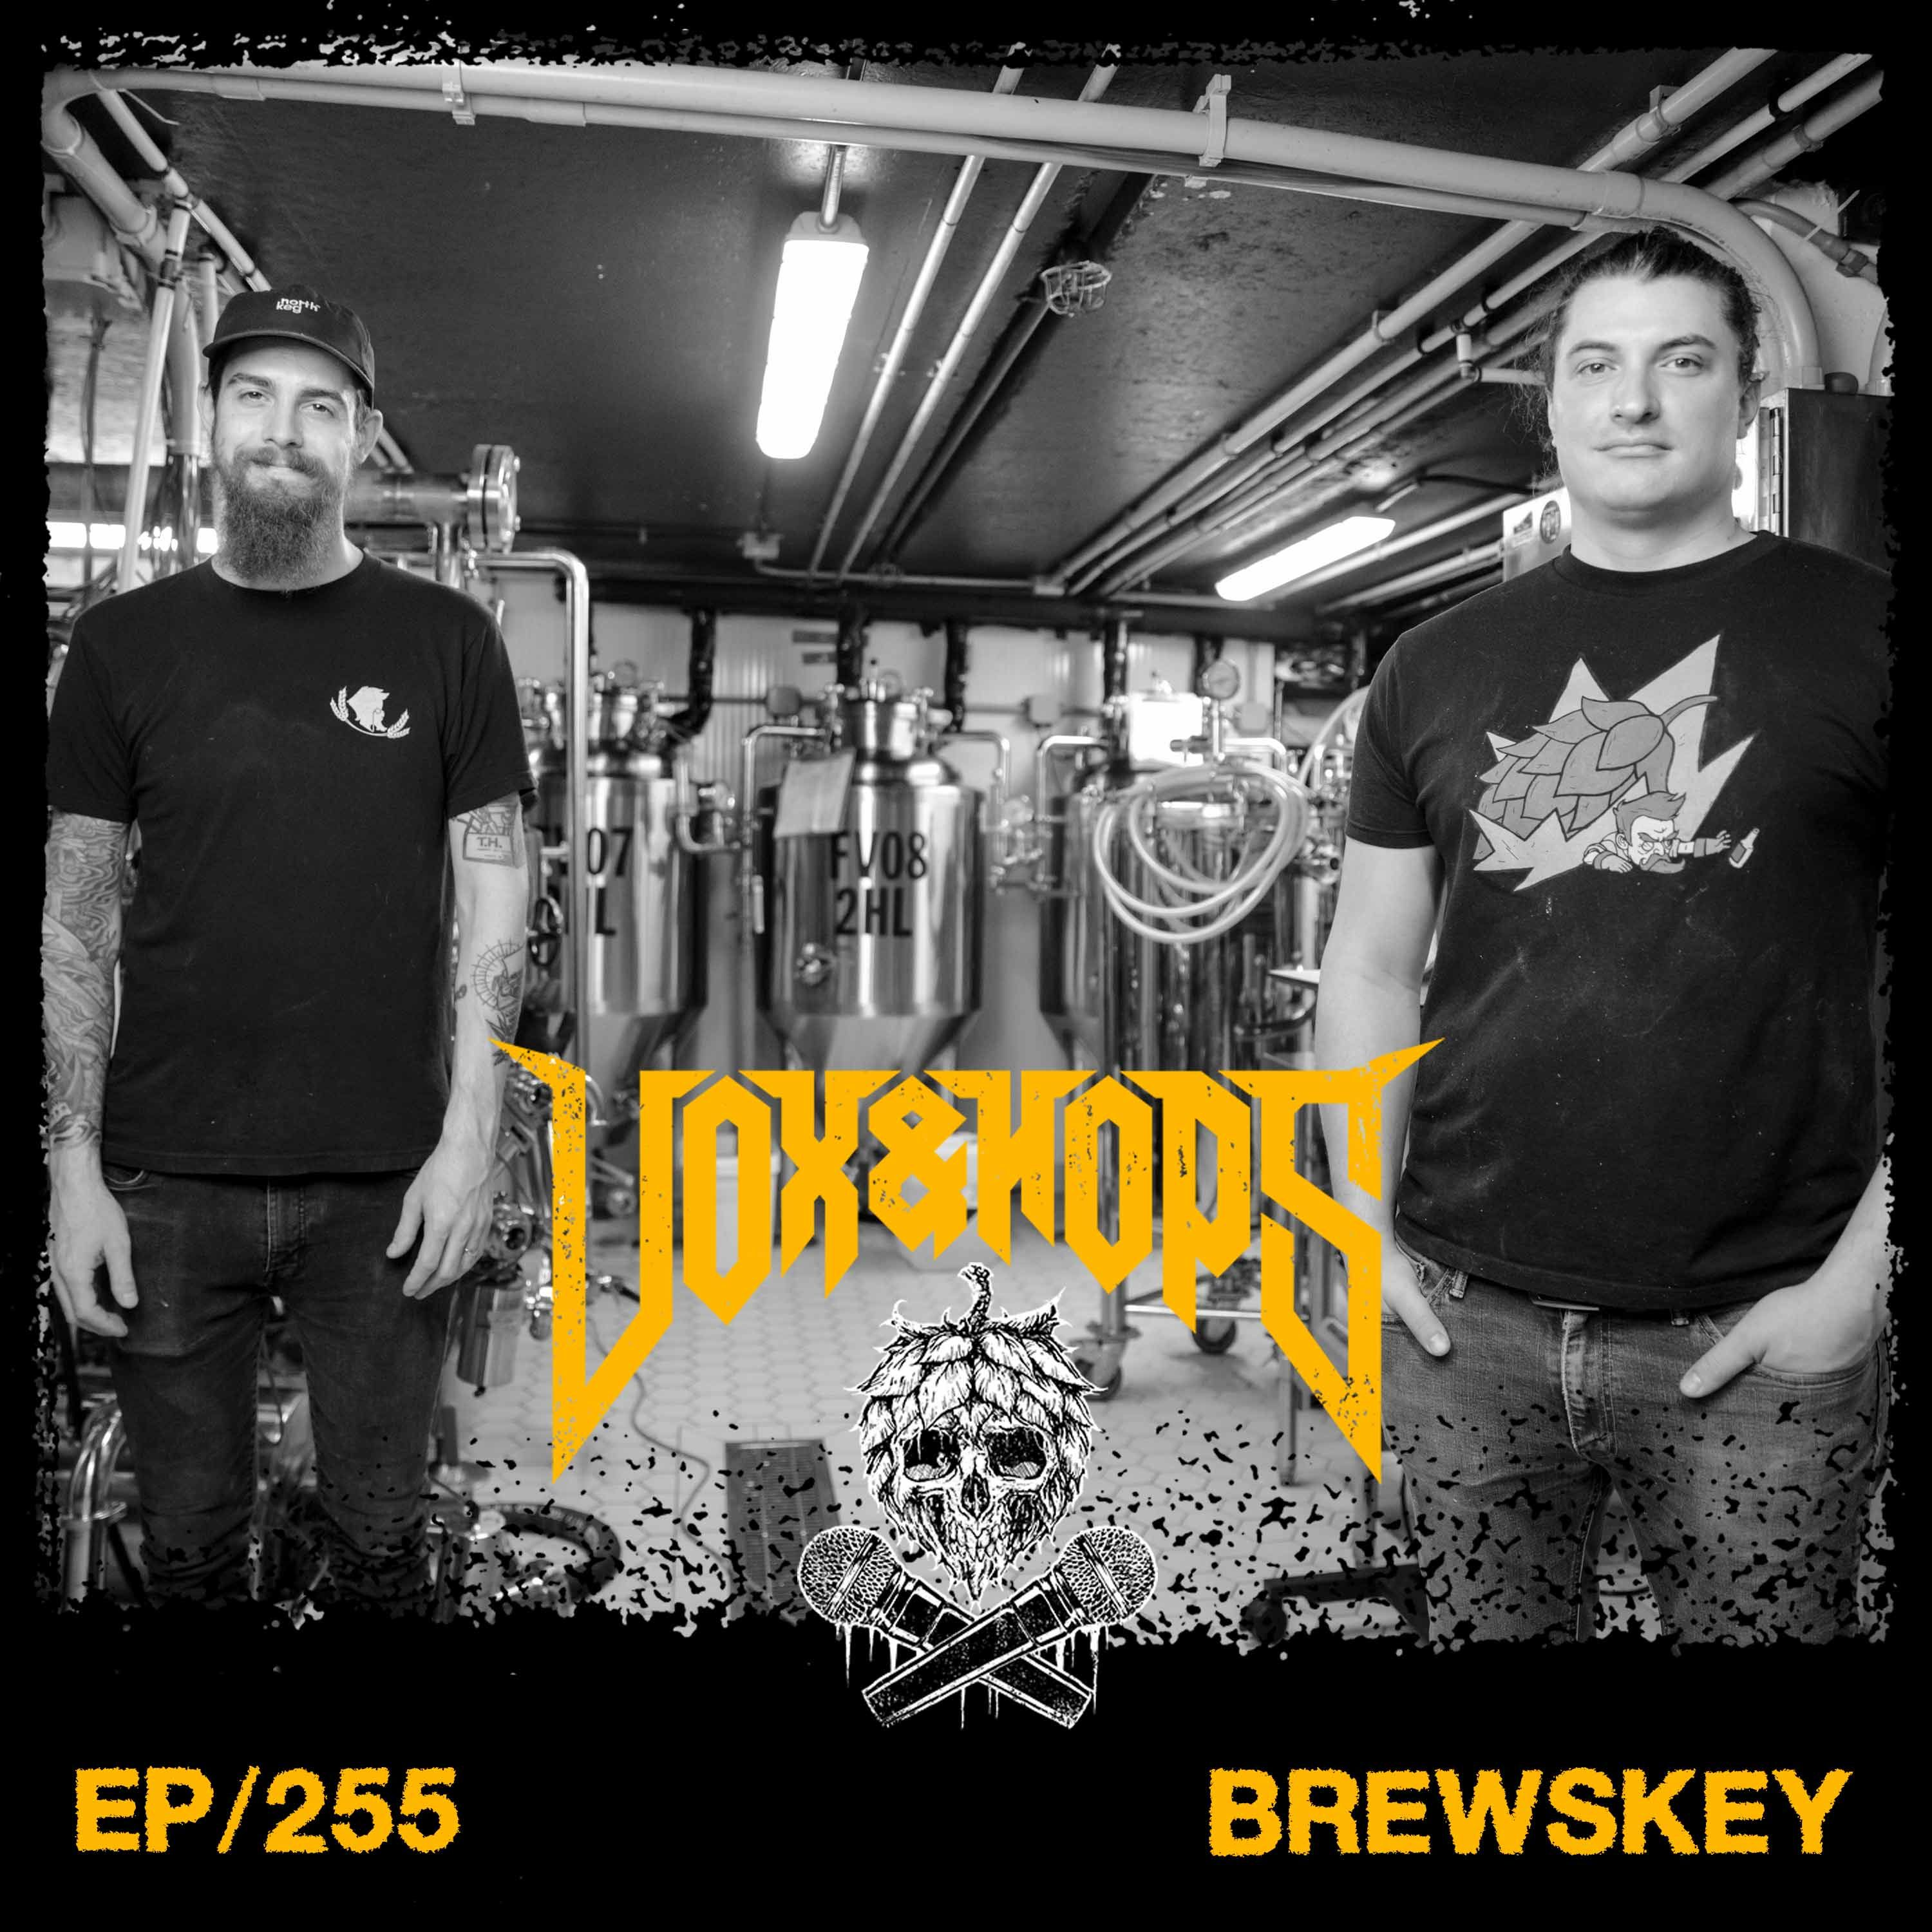 From Banging Heads to Brewing Hype with Derrick Robertson & Zack Heuff of BreWskey